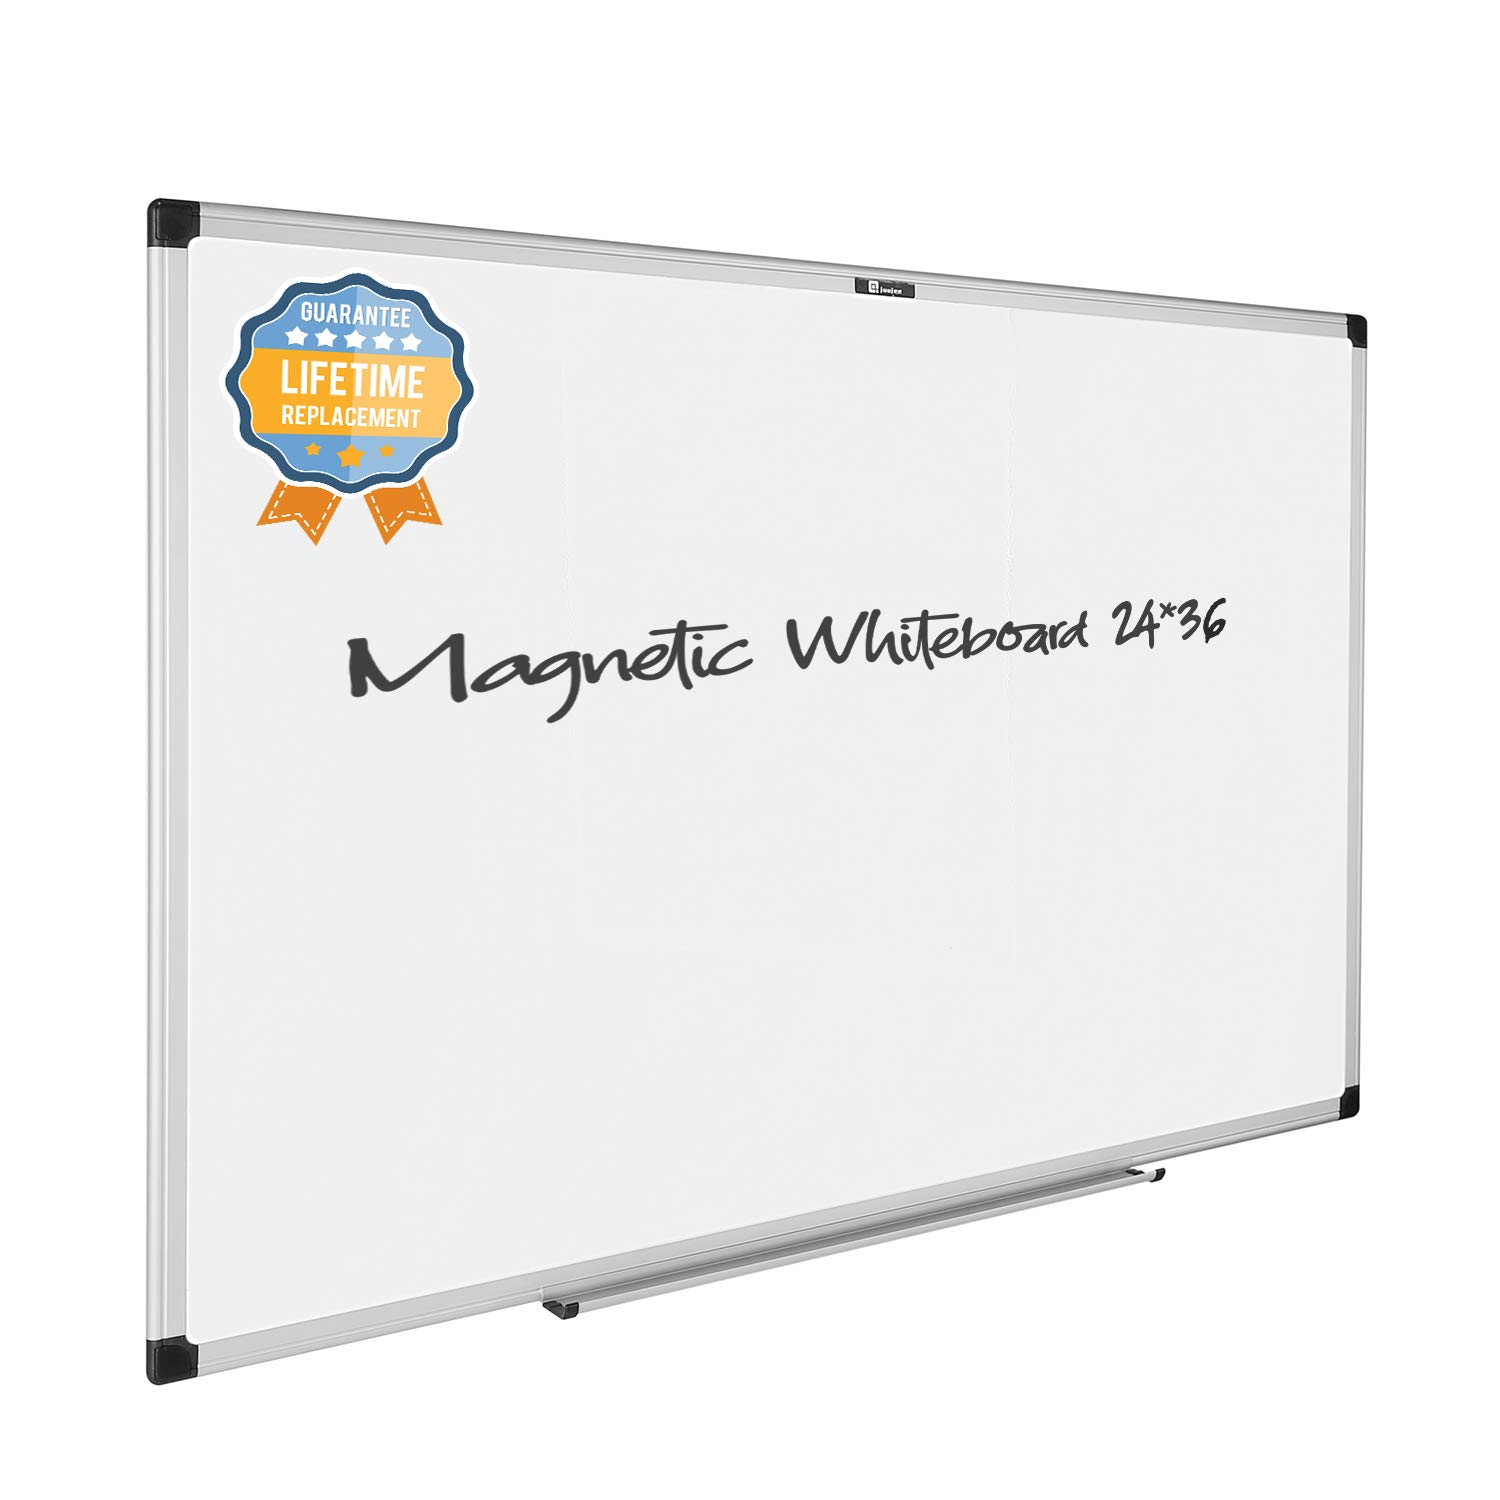 juujee 24x36 Dry Erase Magnetic White Board with Pen Tray, Classic Aluminum Frame, Wall-Mounted Lightweight Whiteboard for Office, Home, School, Include 2 Dry Erase Markers, 4 Magnets, 1 Eraser…